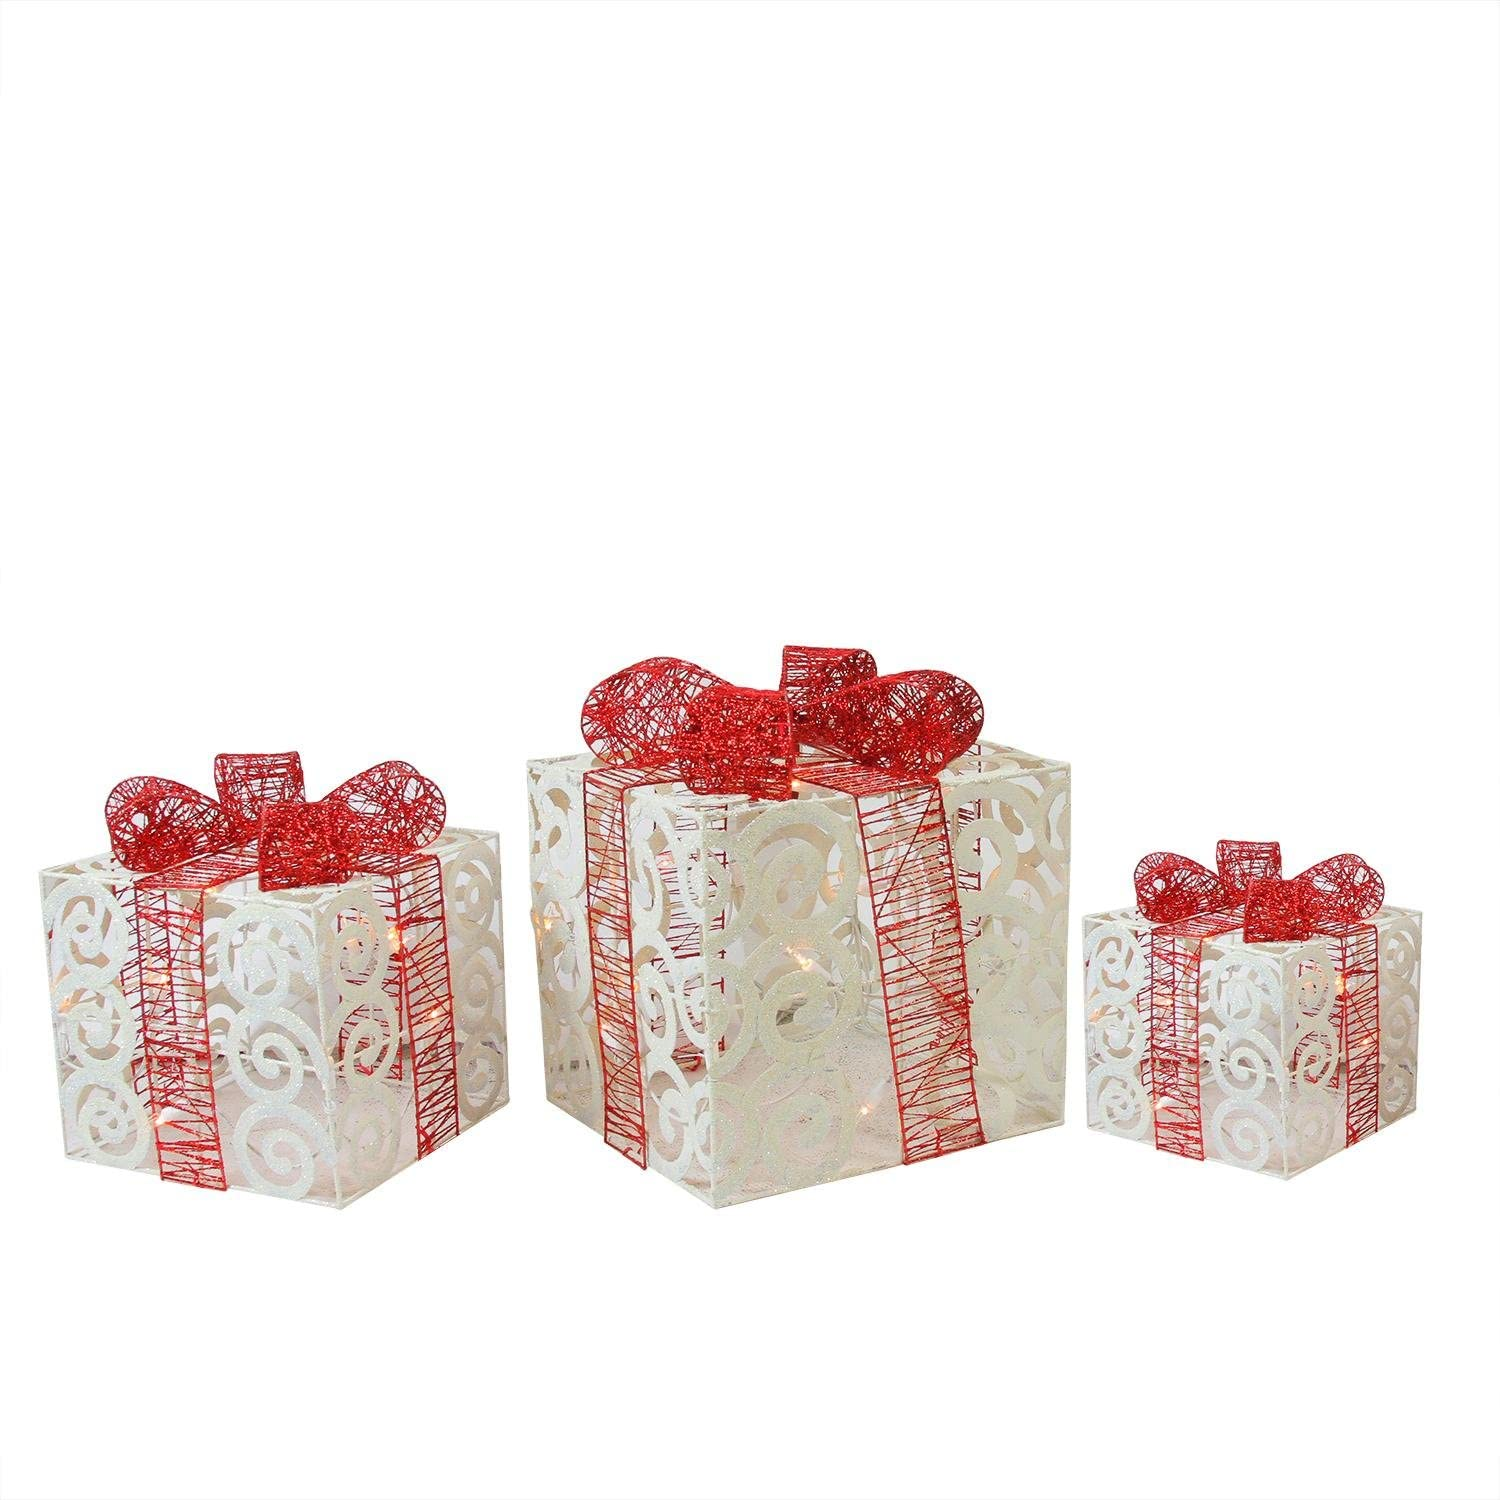 Northlight Set of 3 Lighted Sparkling White Swirl Glitter Gift Boxes Yard Art Christmas Decorations